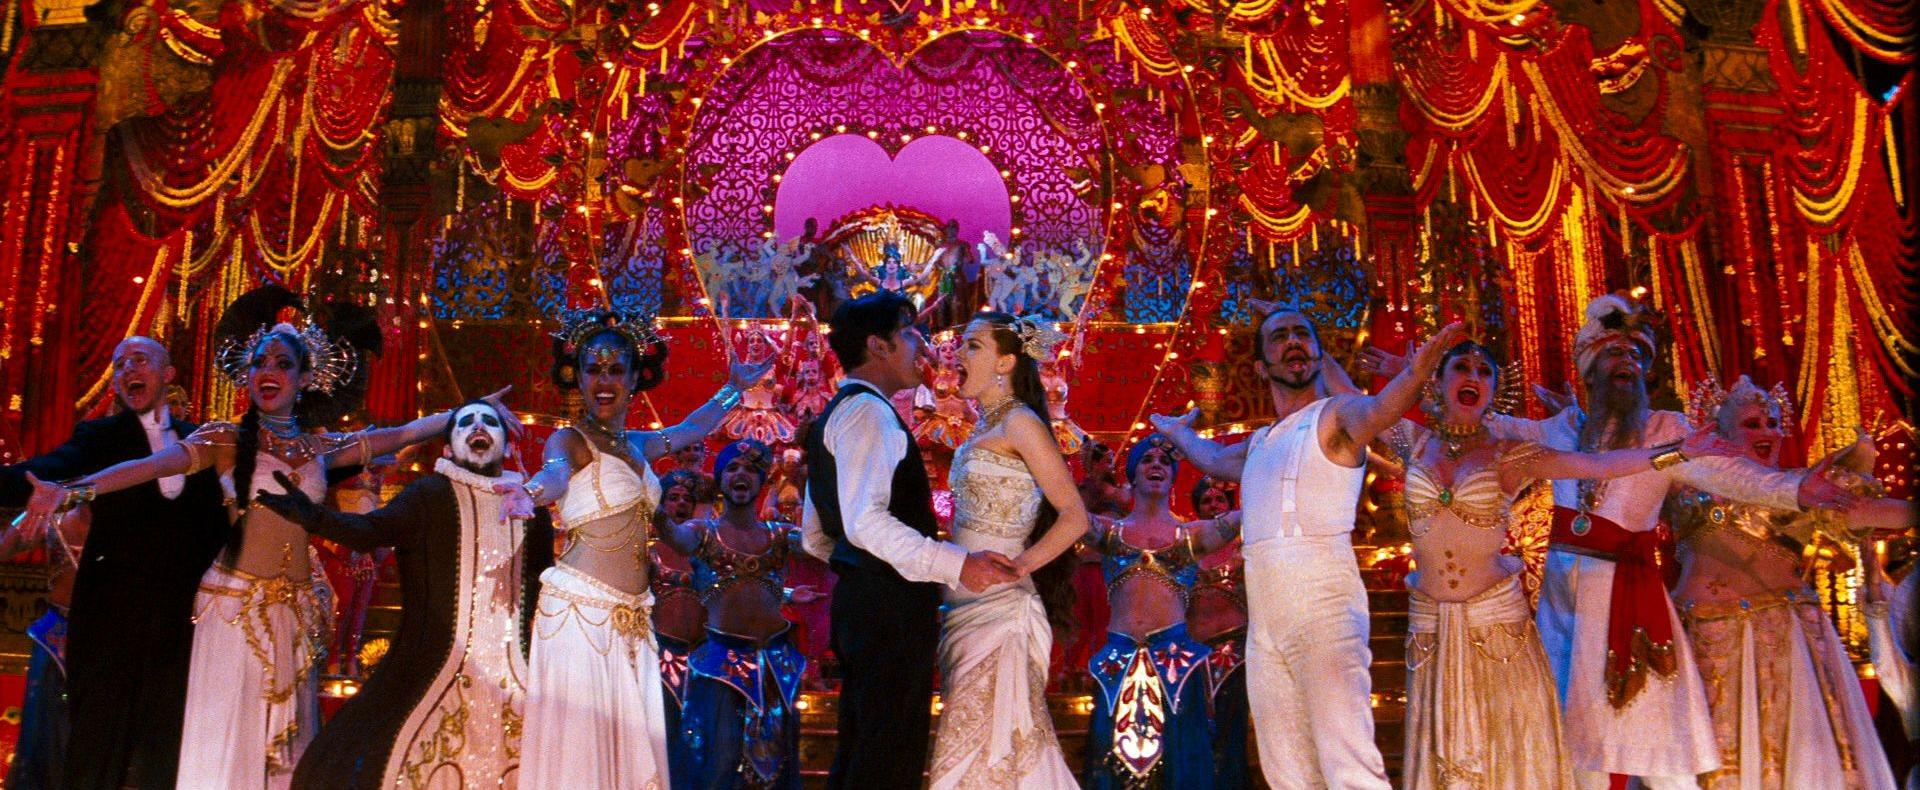 Moulin Rouge, Baz Lurmann, 2001